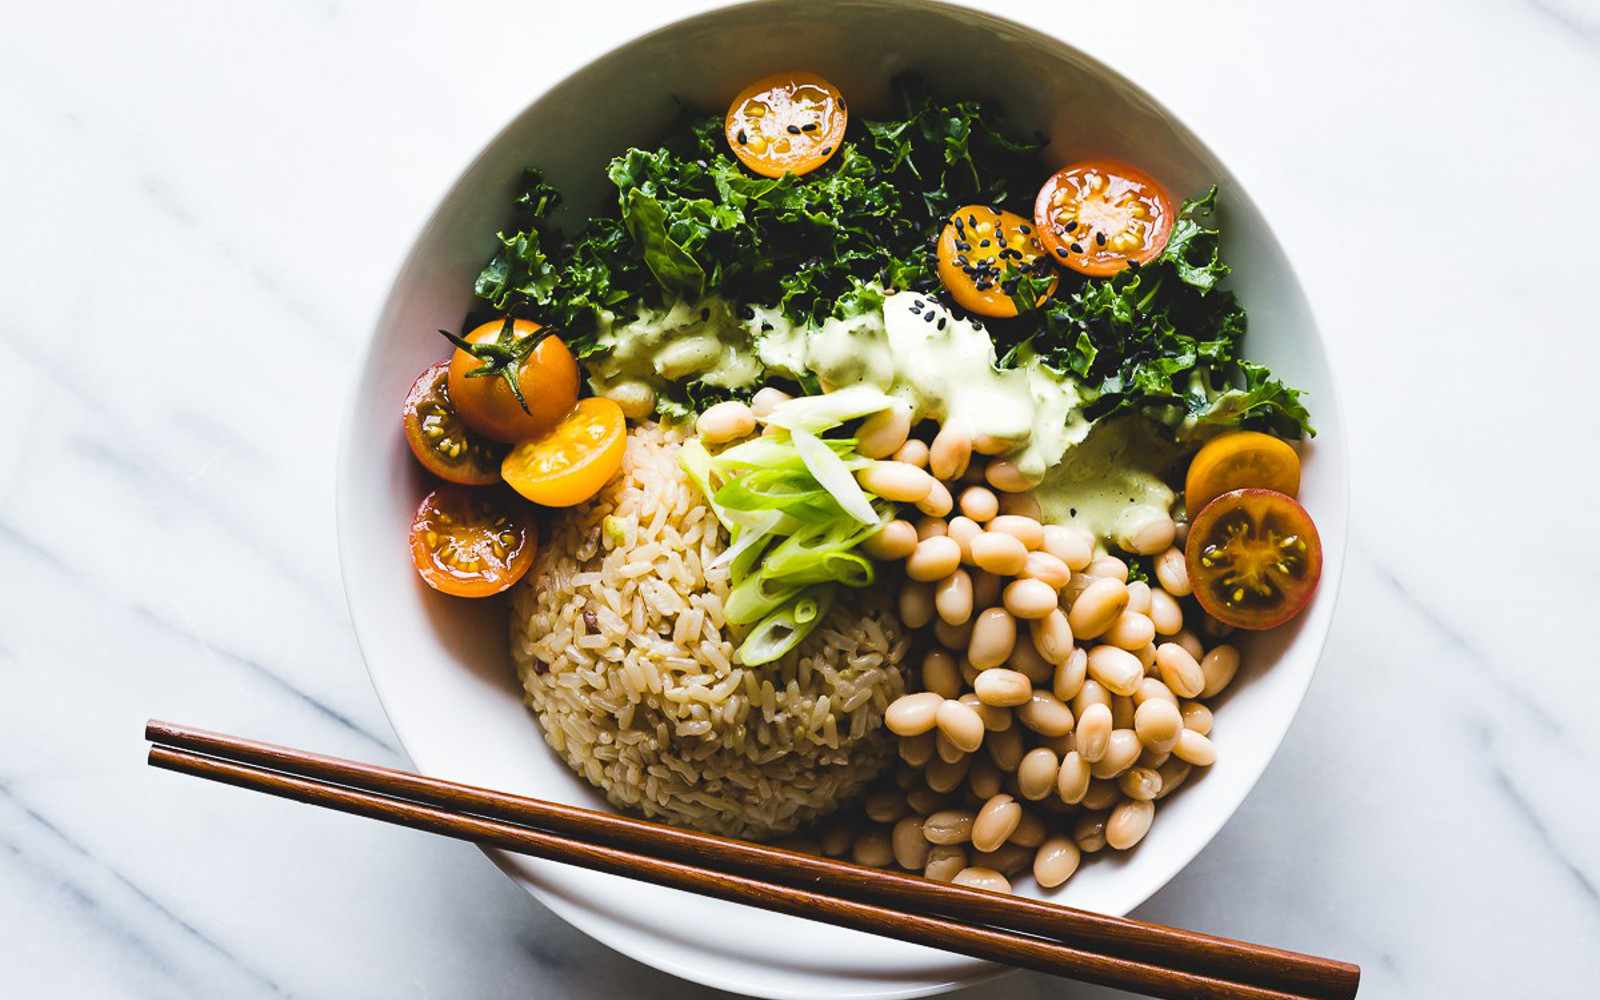 Vegan Gluten-Free Green Thai Curry Rice Bowl with white beans, tomatoes, and kale